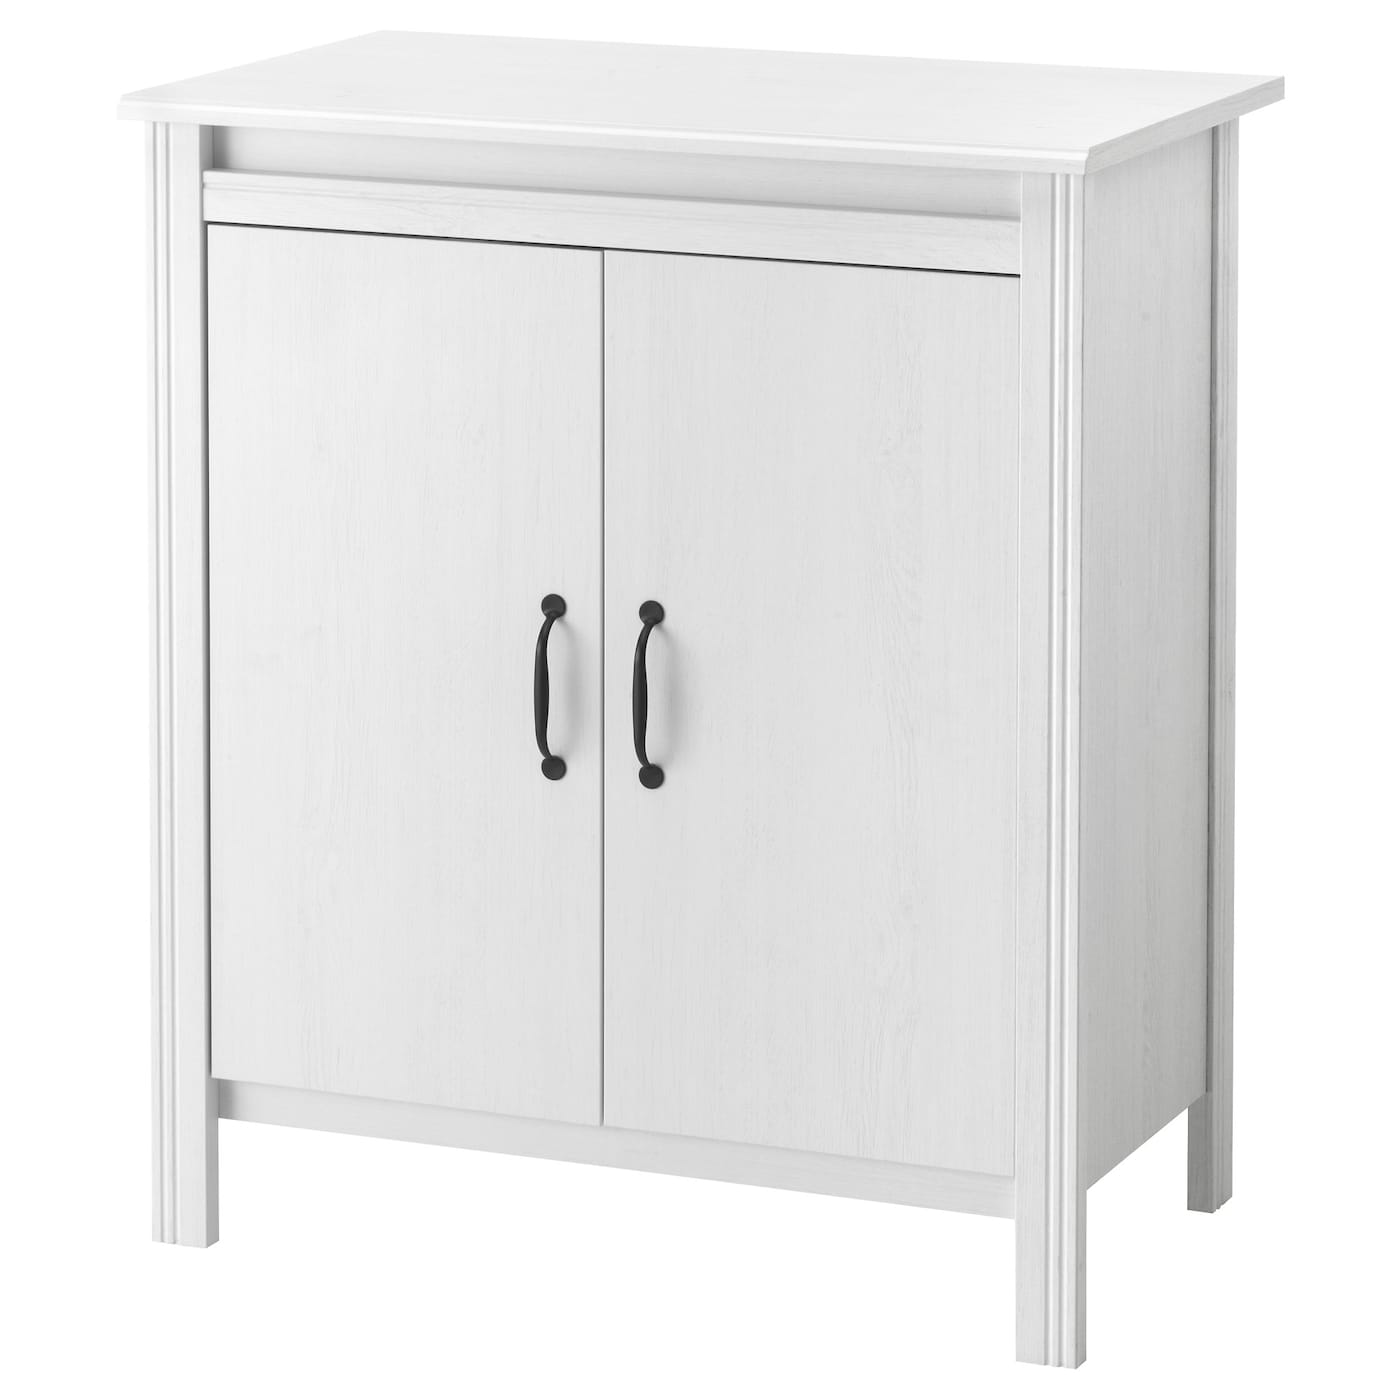 Brusali Cabinet With Doors White 80 X 93 Cm Ikea